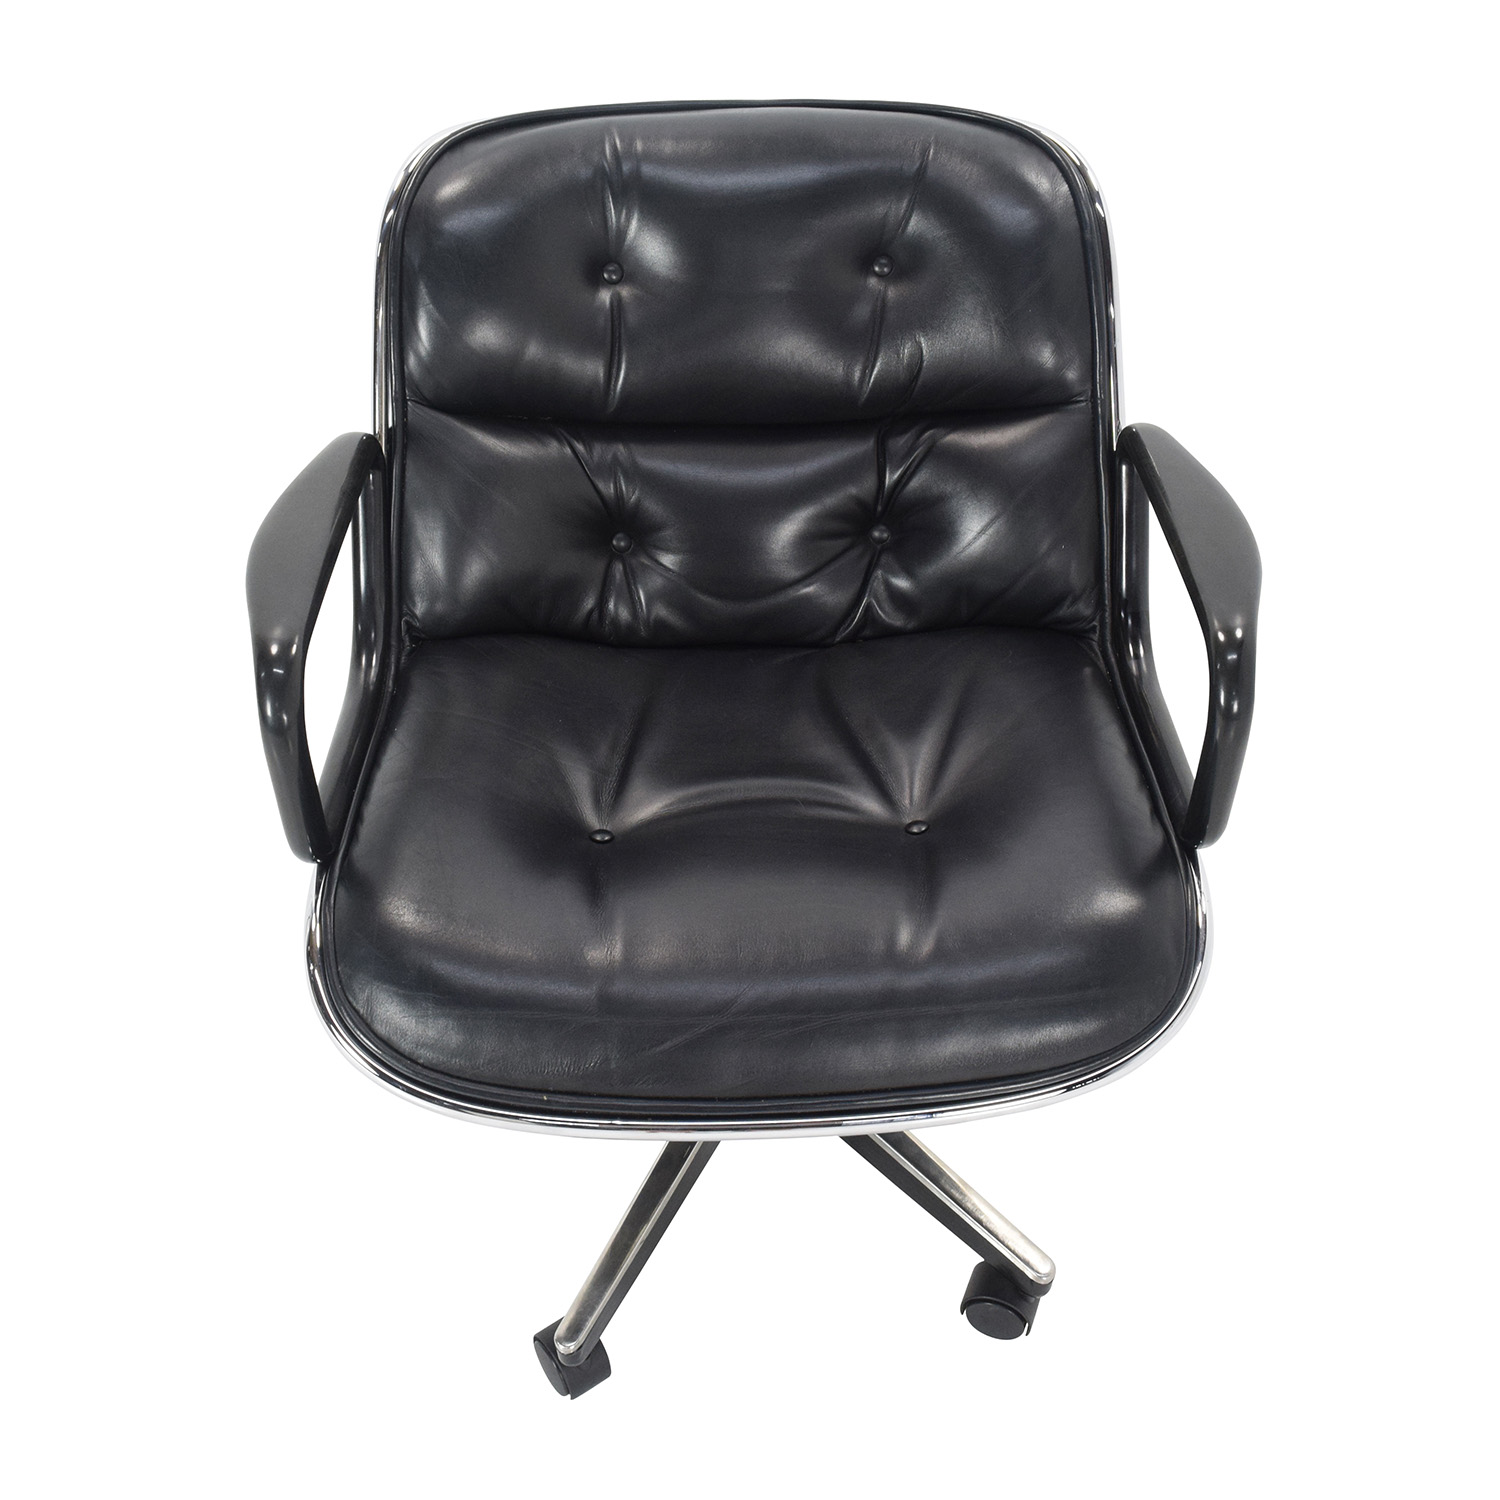 Deluxe Boardroom Chair sale